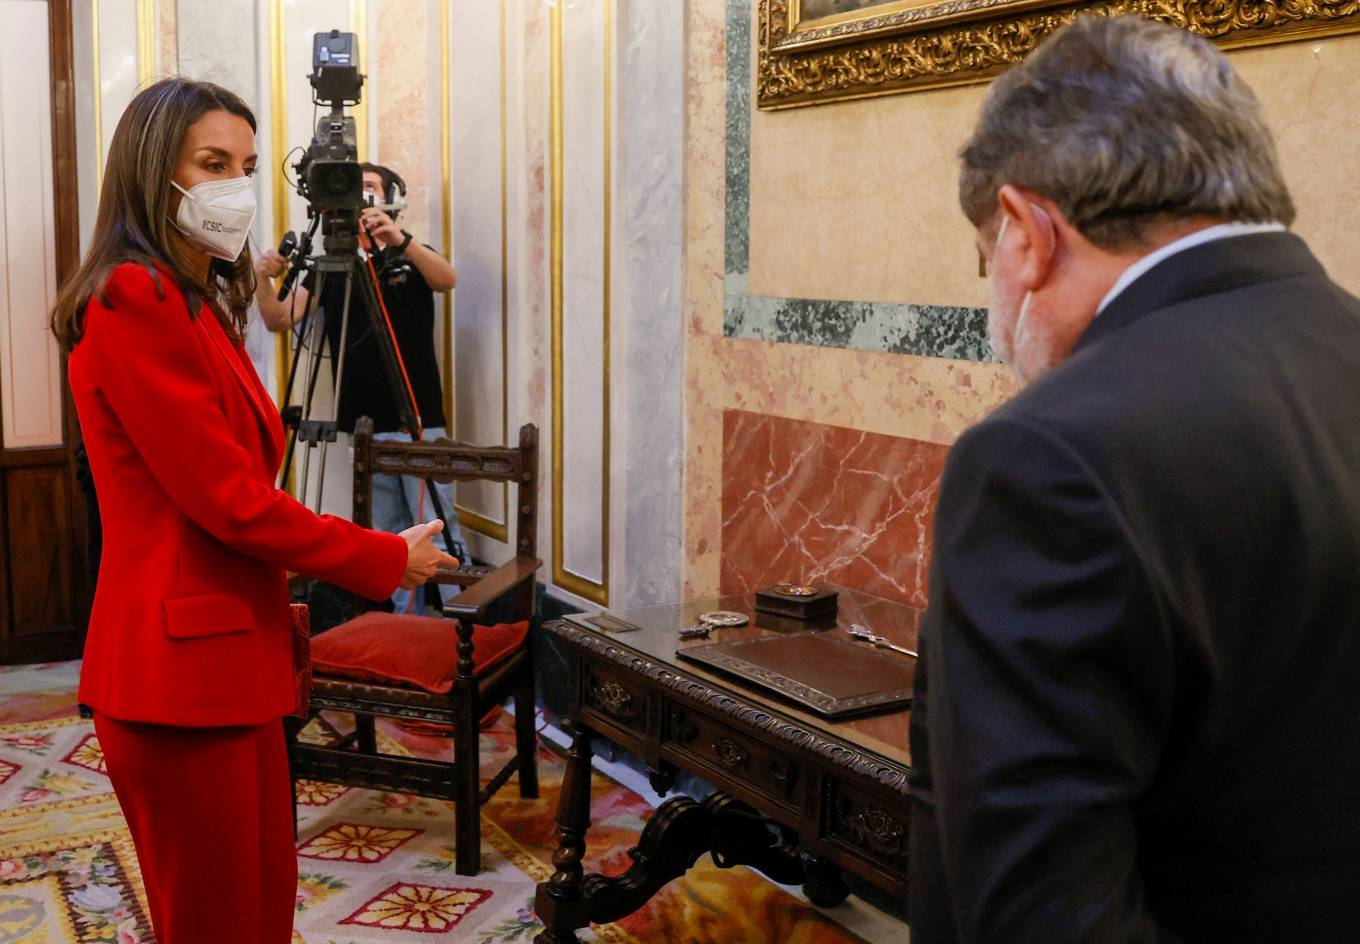 Queen Letizia Of Spain 2021 : Queen Letizia of Spain – In all red attends the tribute to the figure of Clara Campoamor in Madrid-15